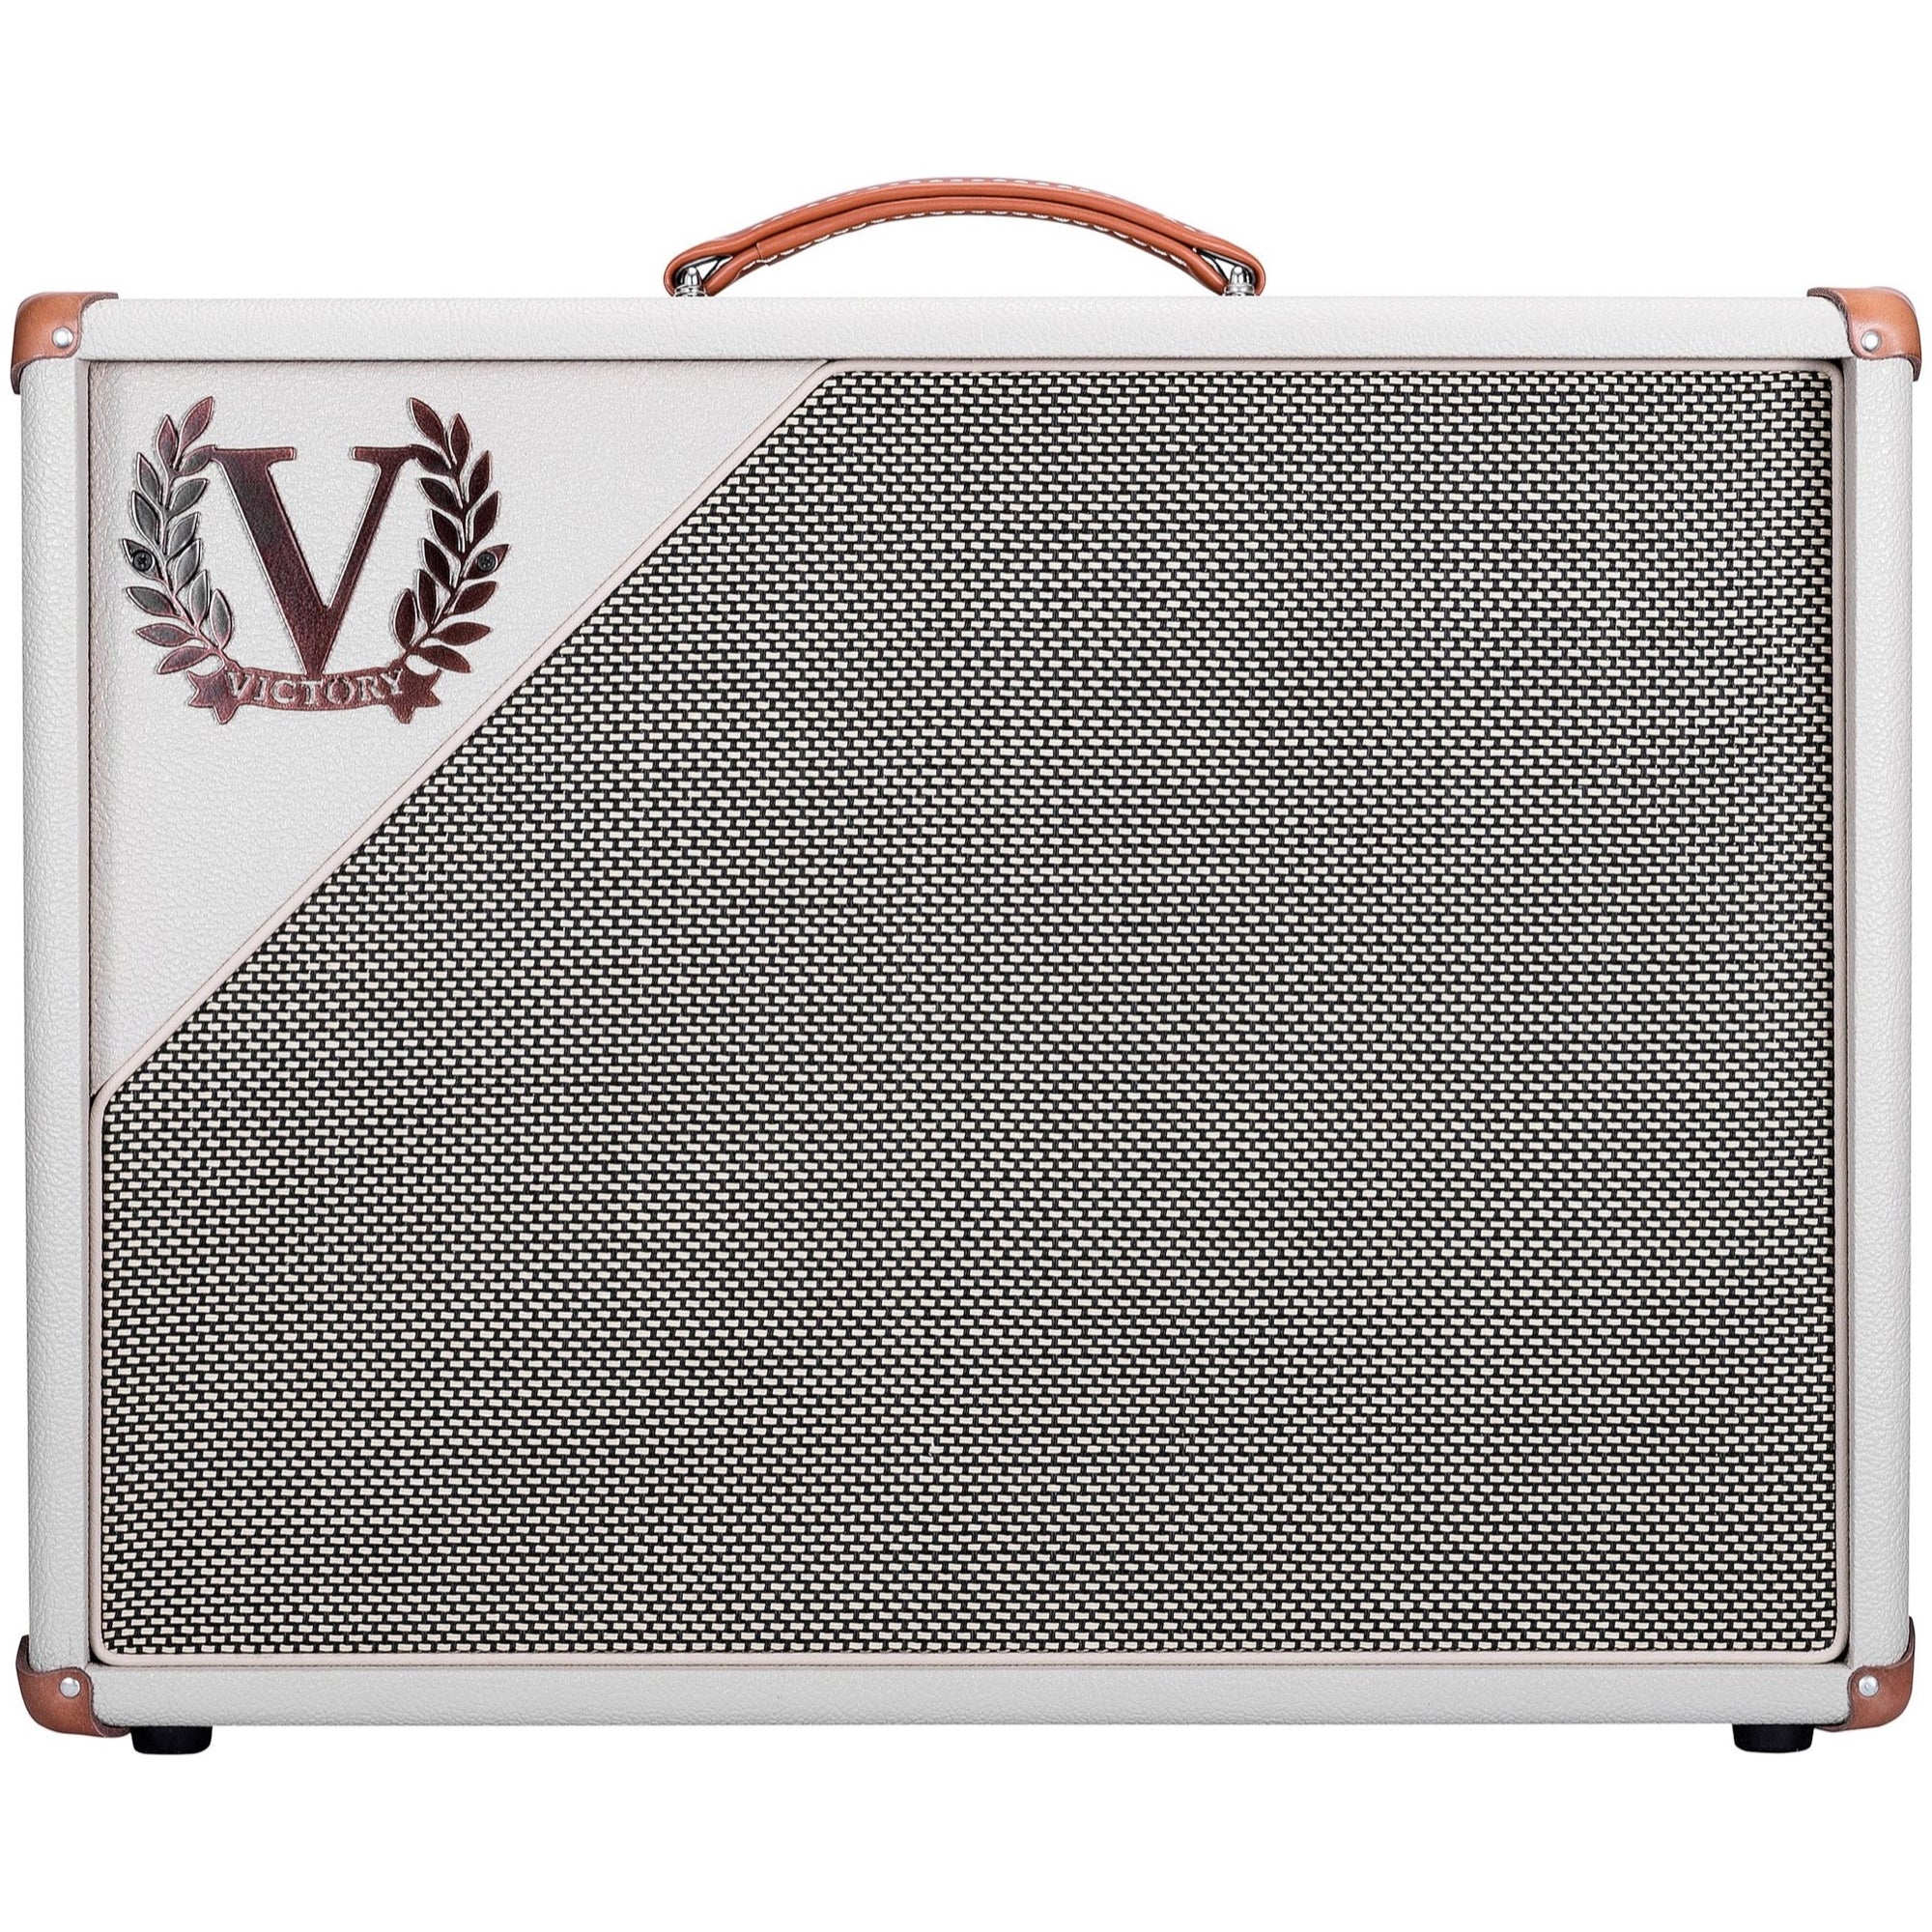 Victory V40 Deluxe Combo Amplifier (42 Watts, 1x12 Inch)